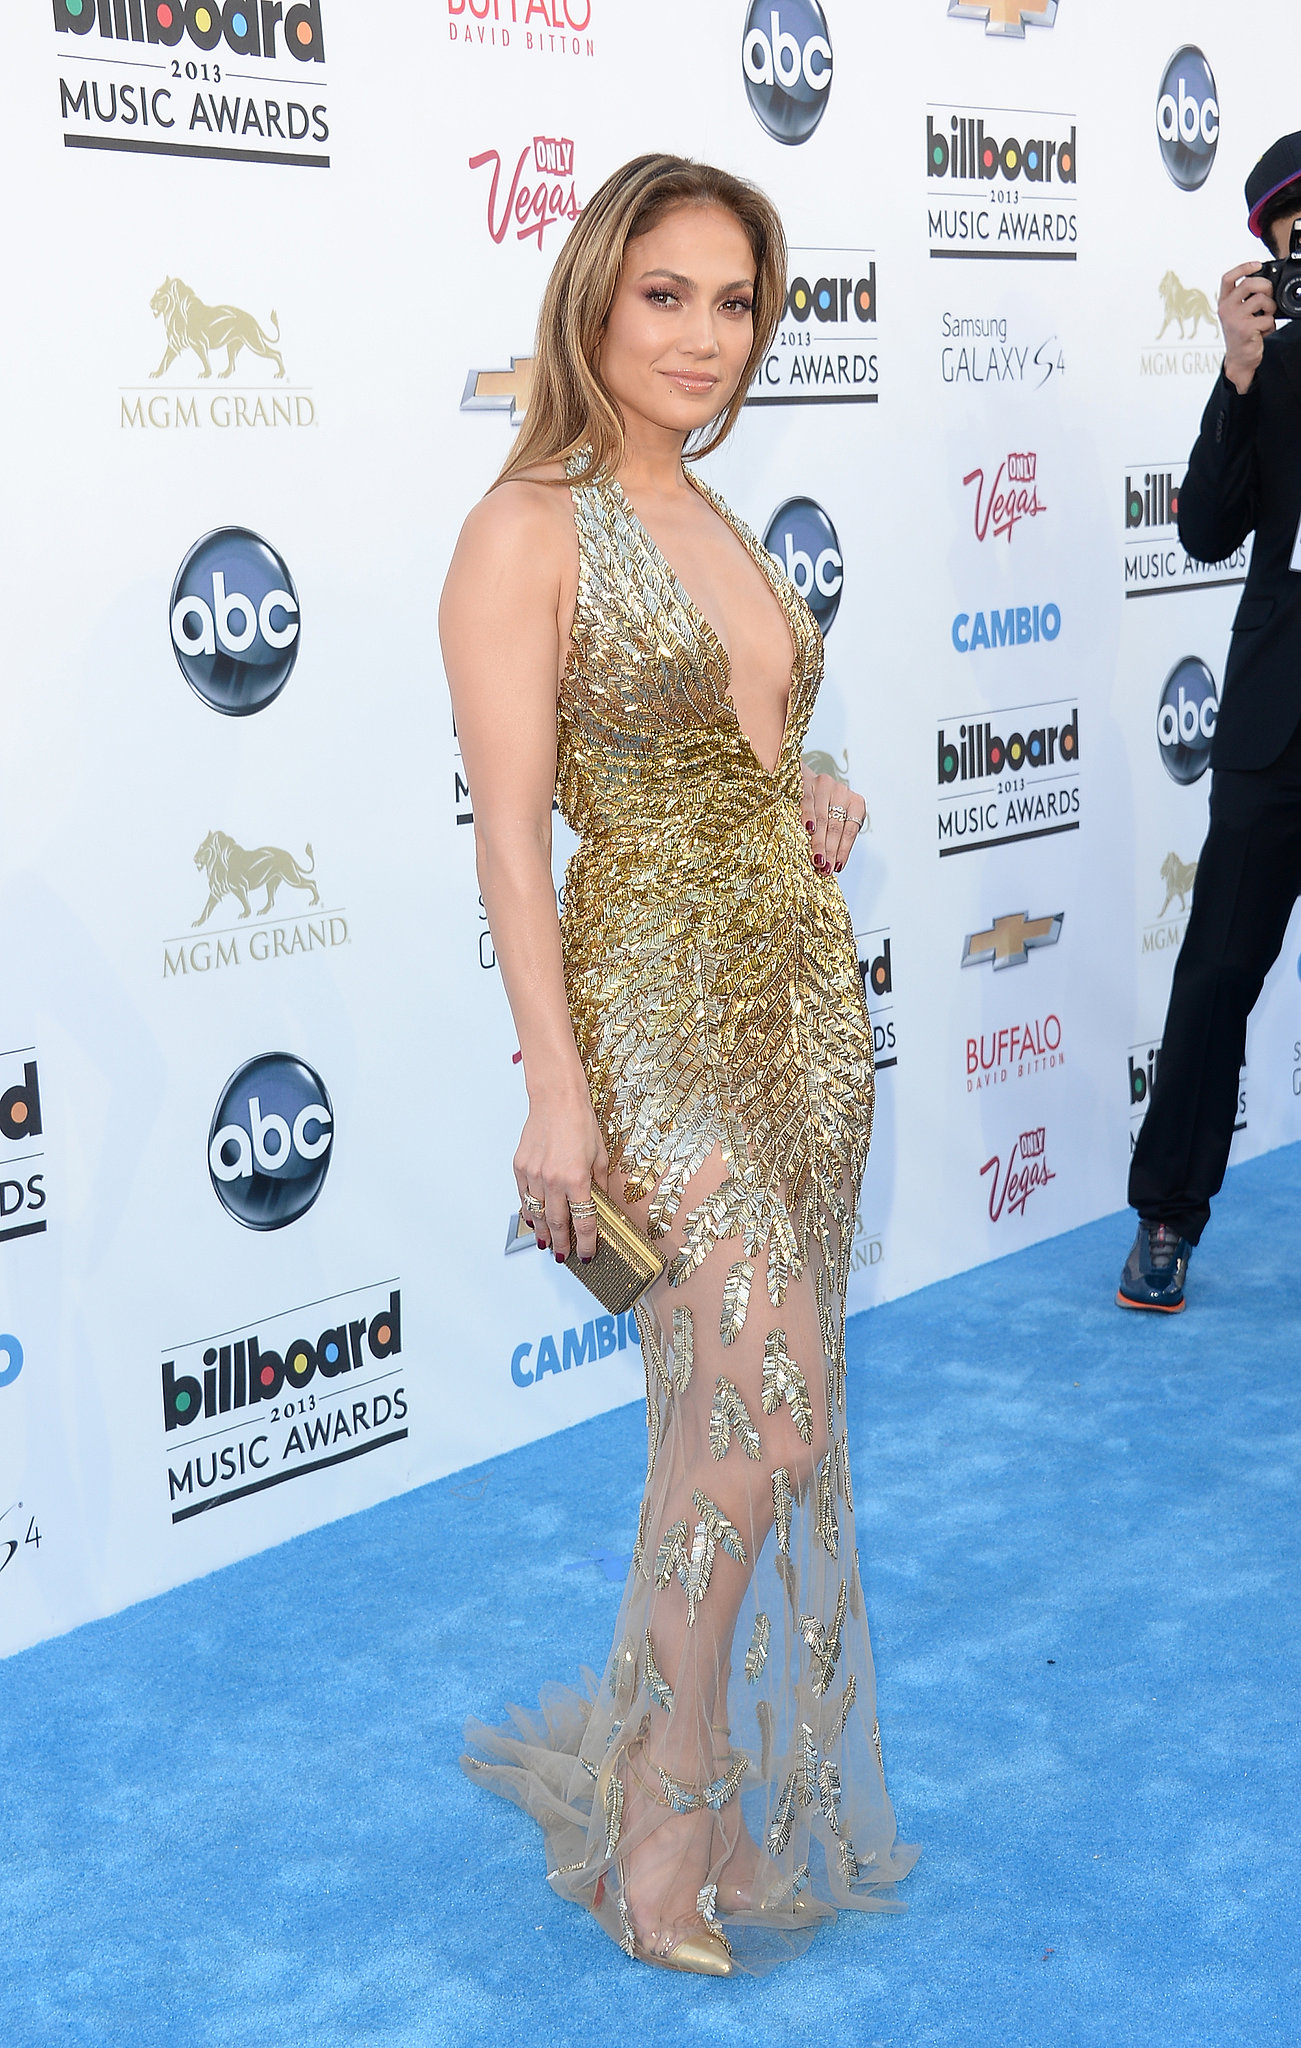 At the 2013  Billboard Music Awards, Jennifer shimmered in a gilded Zuhair Murad Couture confection.